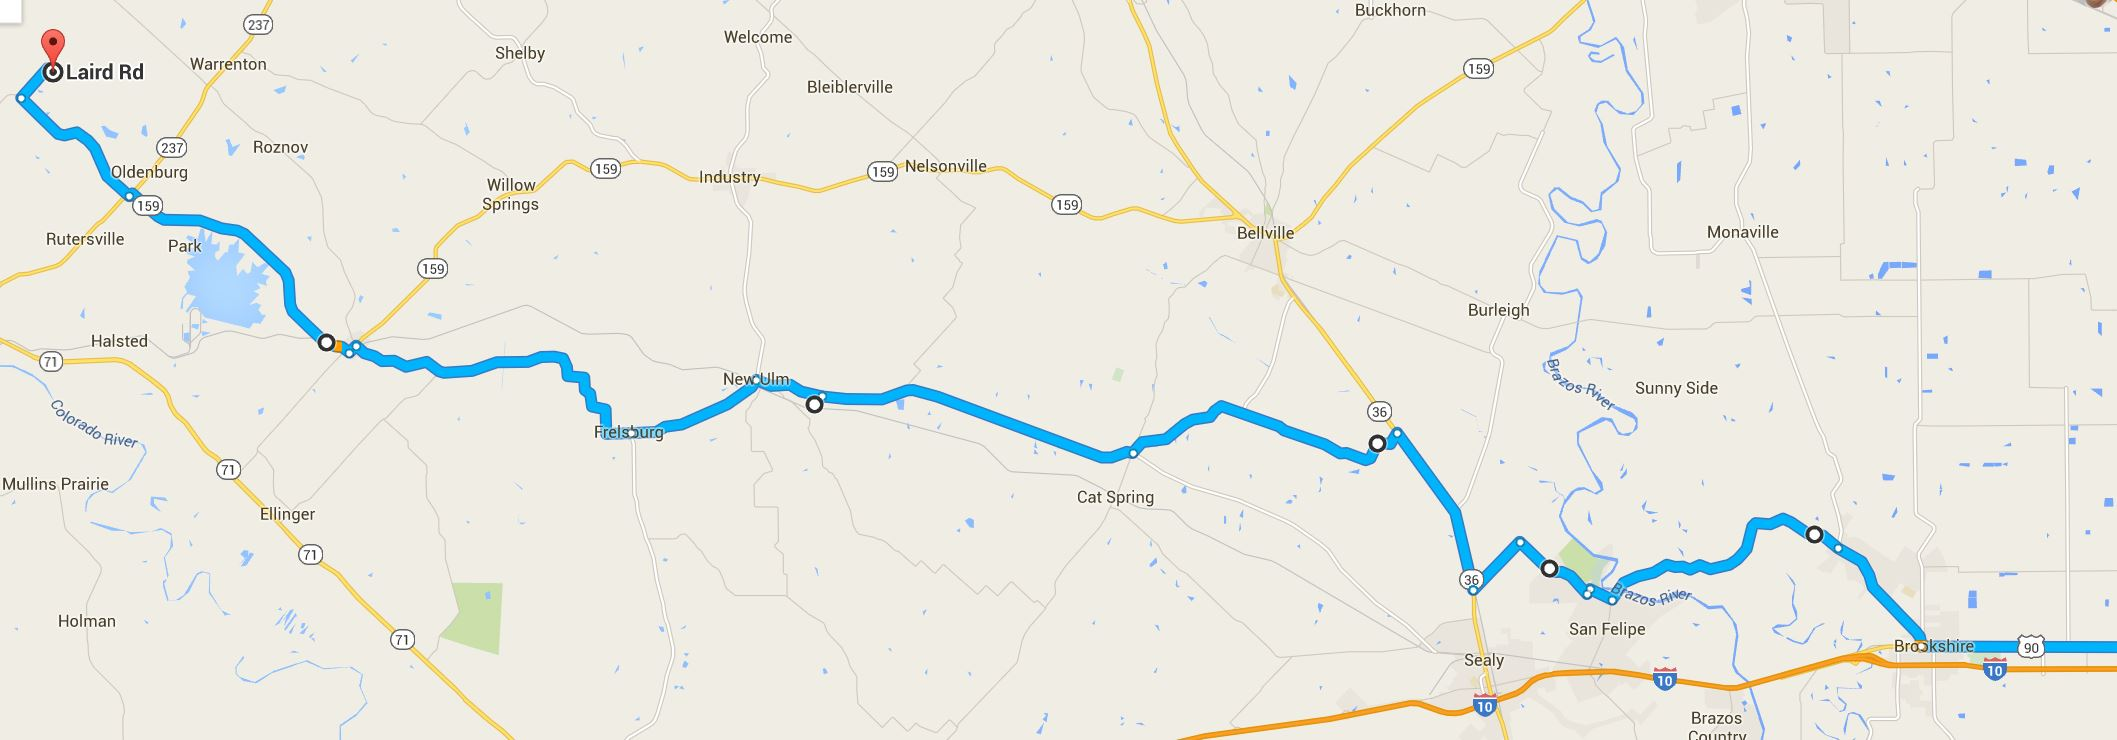 Click to expand. Route from Katy to Round Top, TX